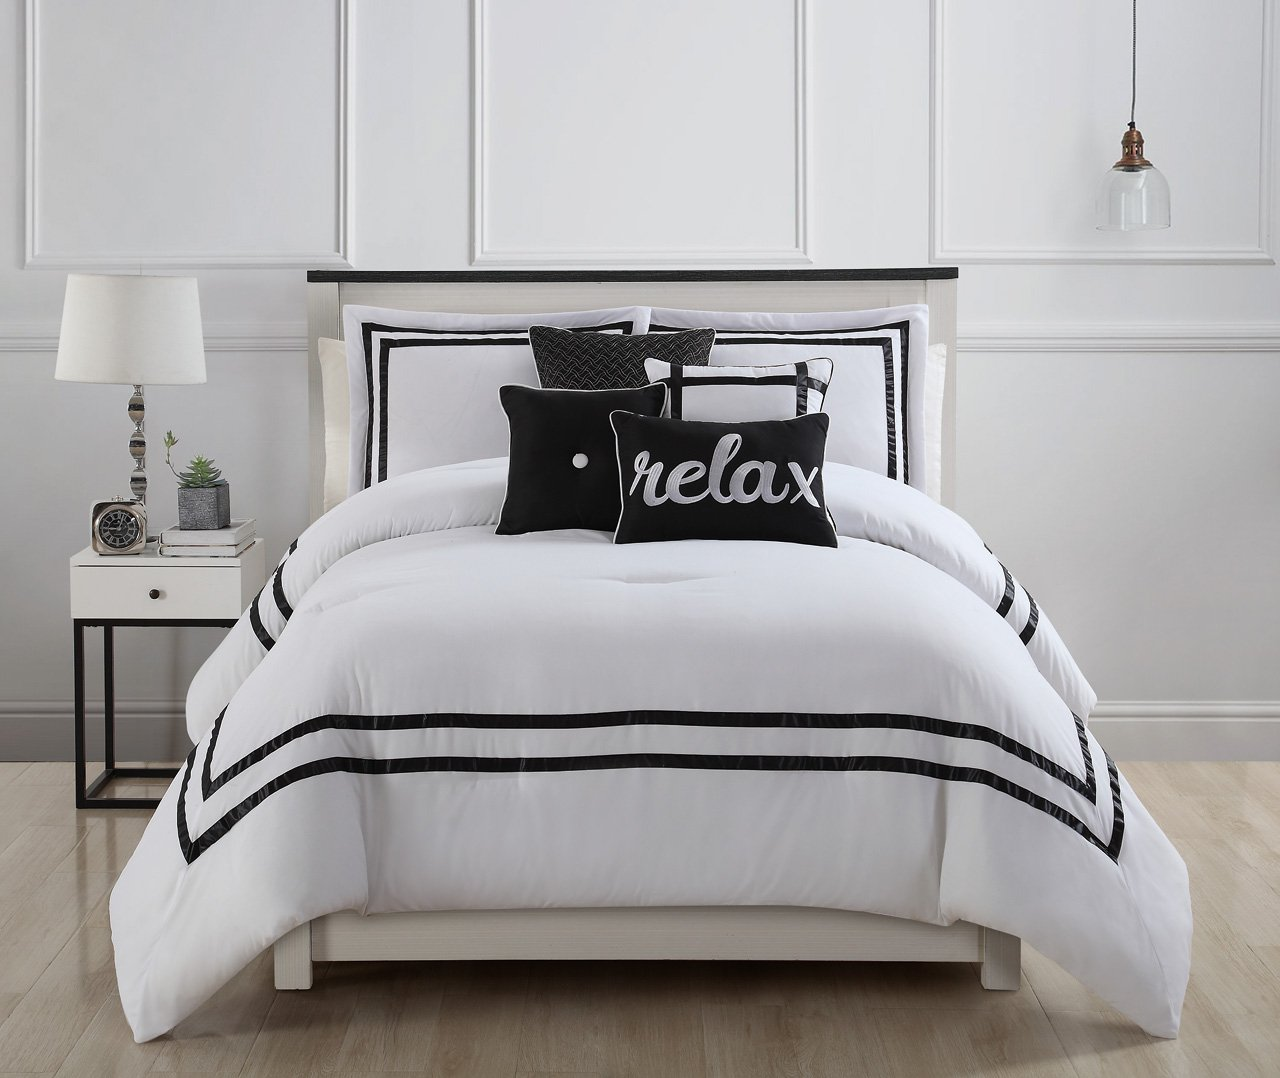 11 Piece Catherine Malandrino Sterling Black/White Bed in a Bag Set Queen